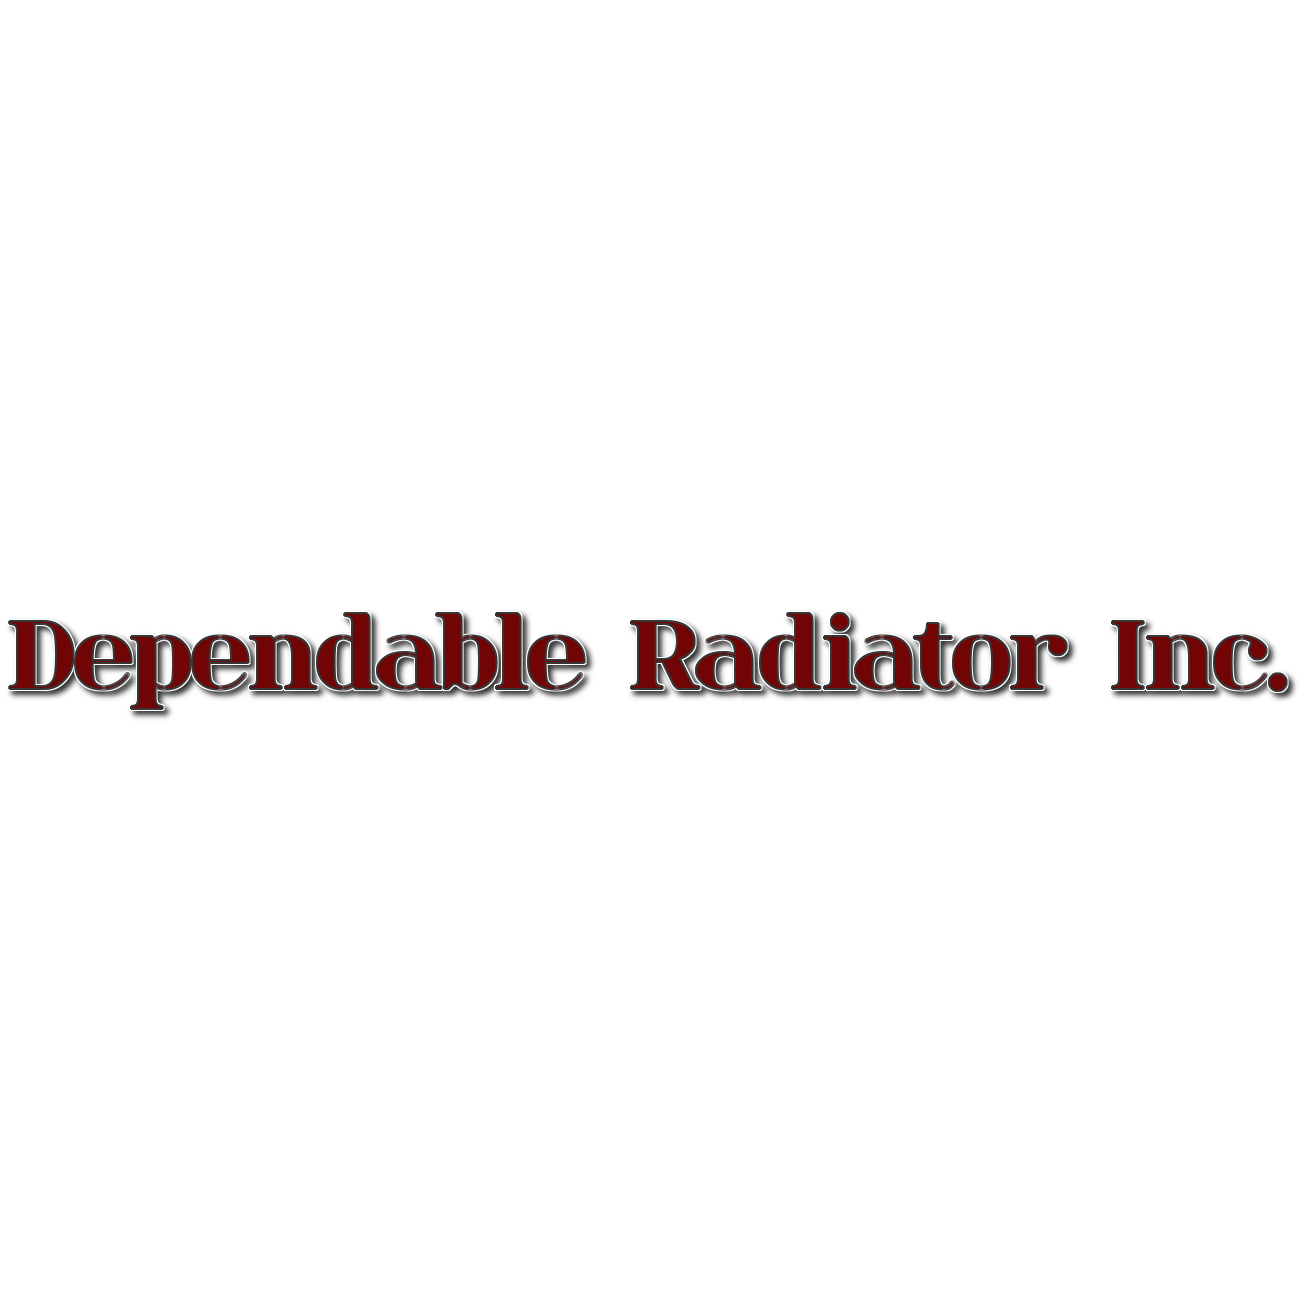 Dependable Radiator Inc